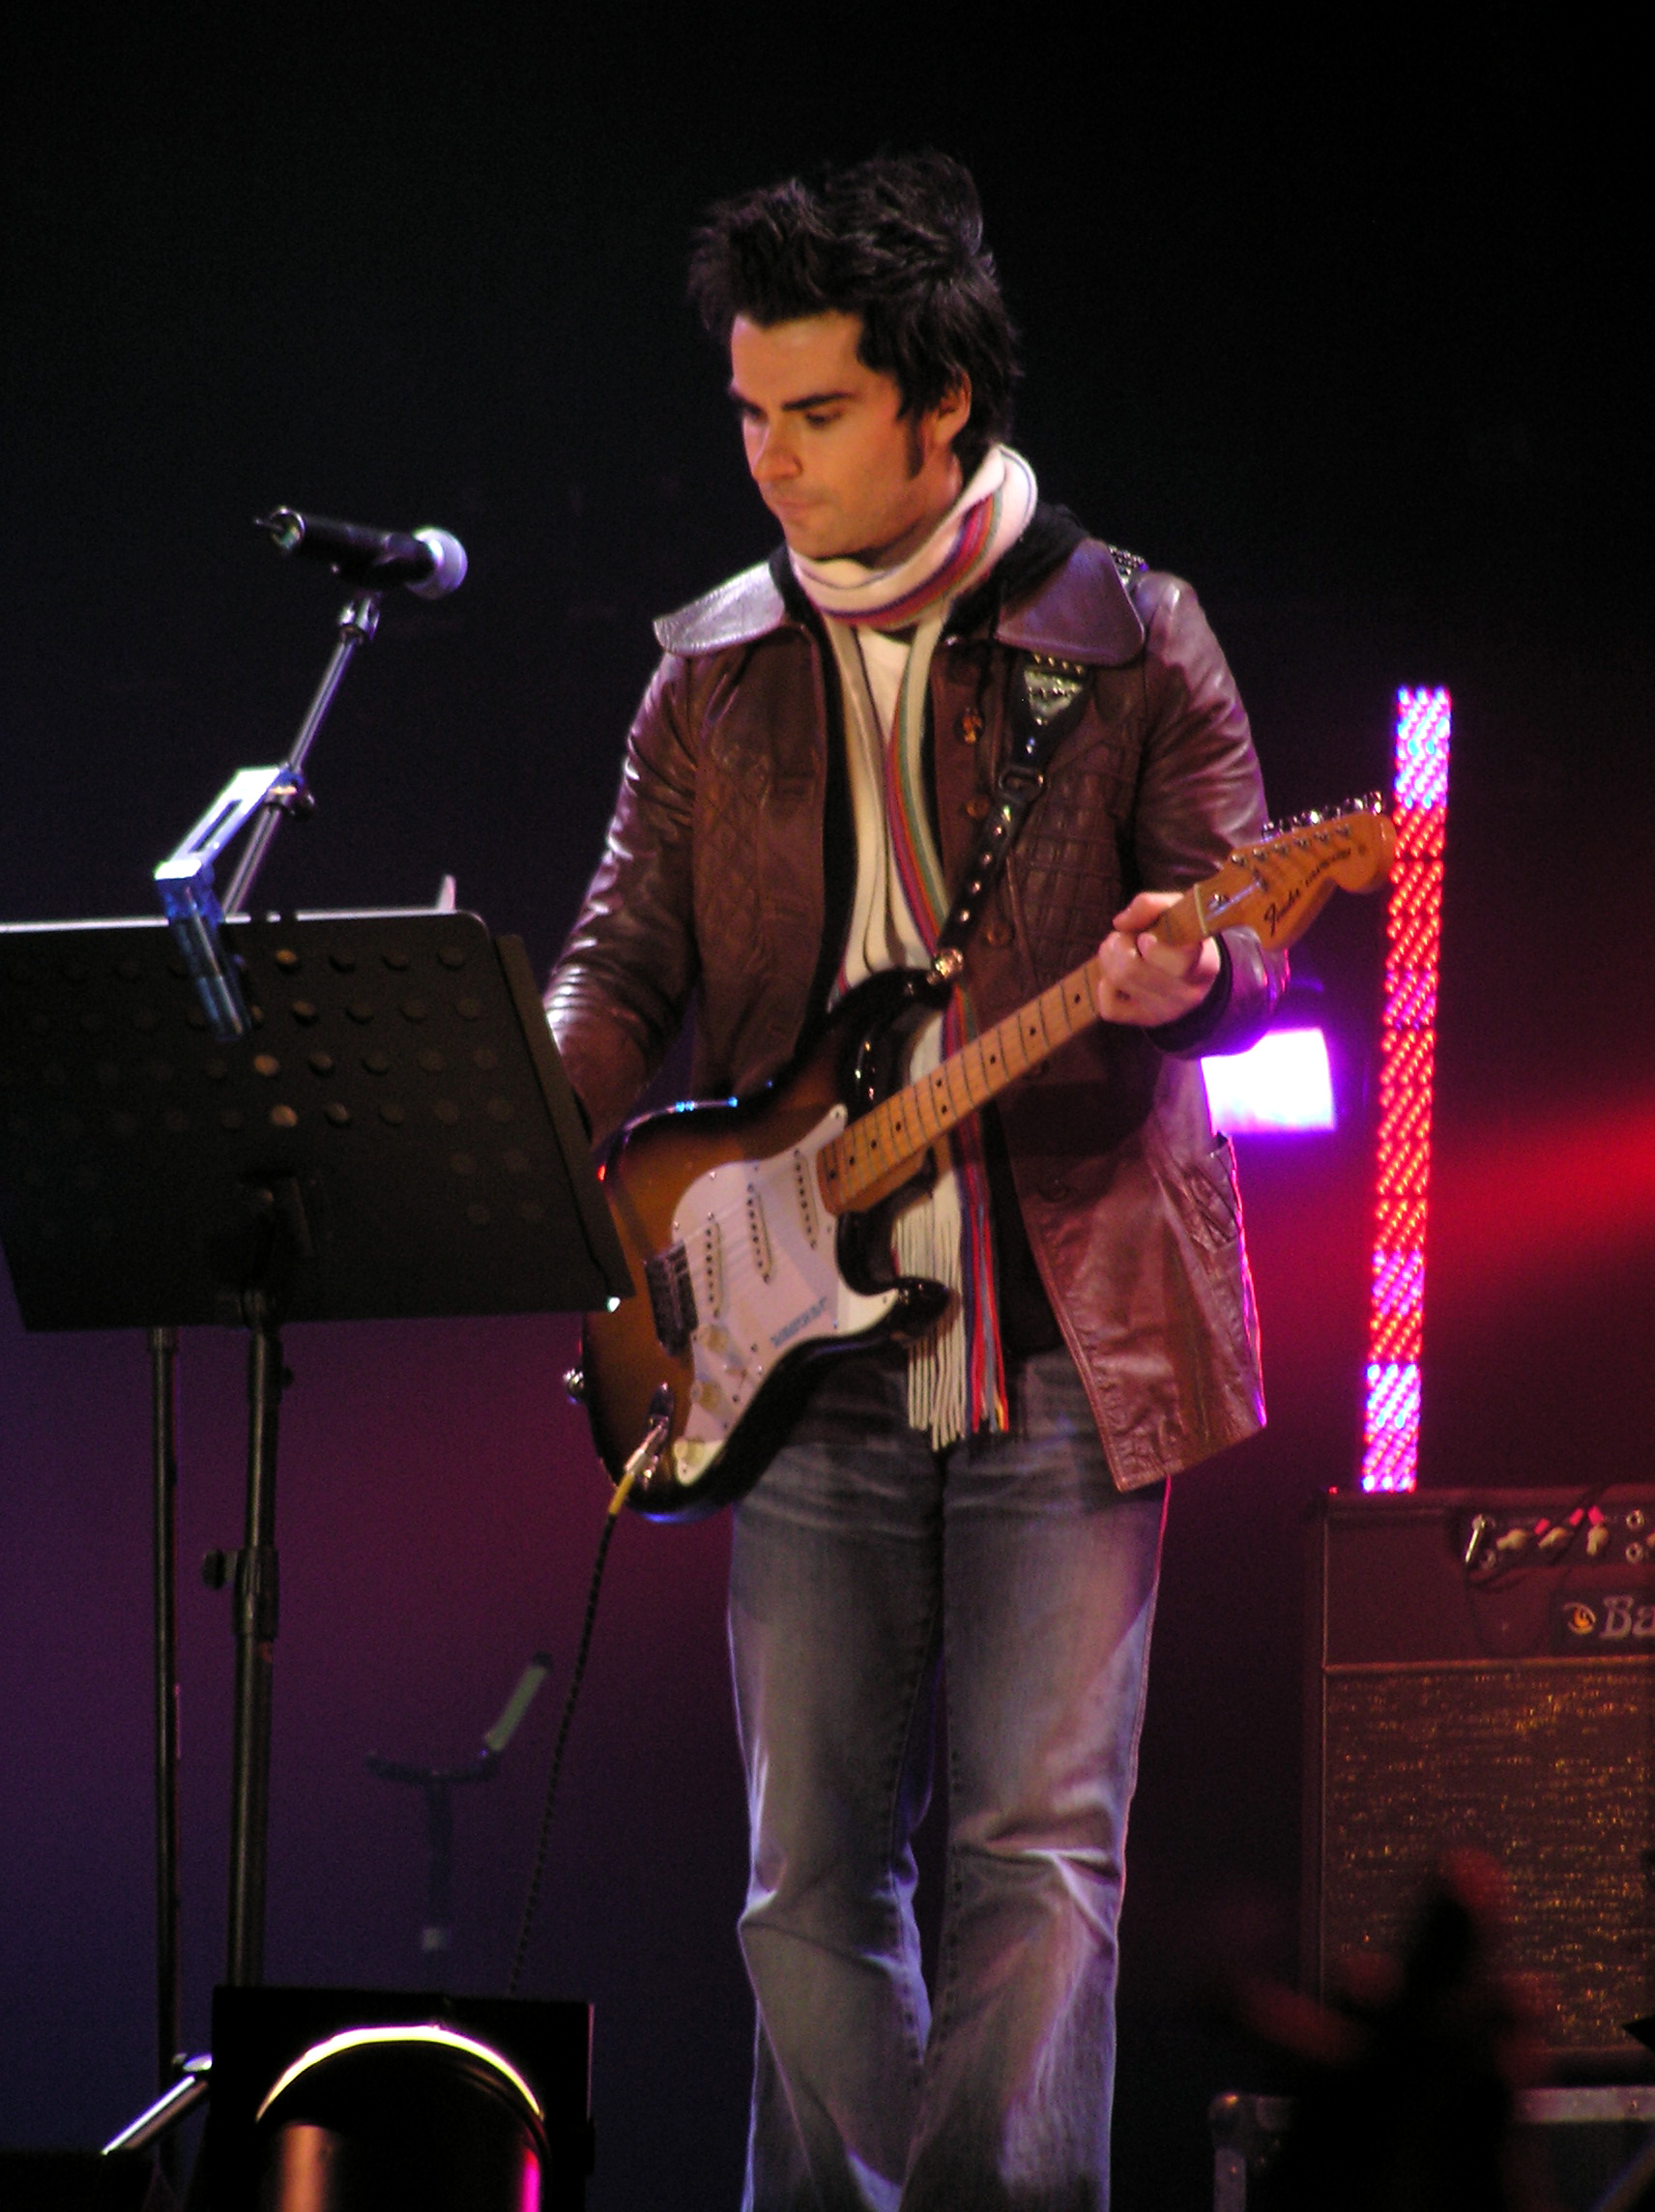 Image:Kelly jones royalty images cardiff 2005.jpg